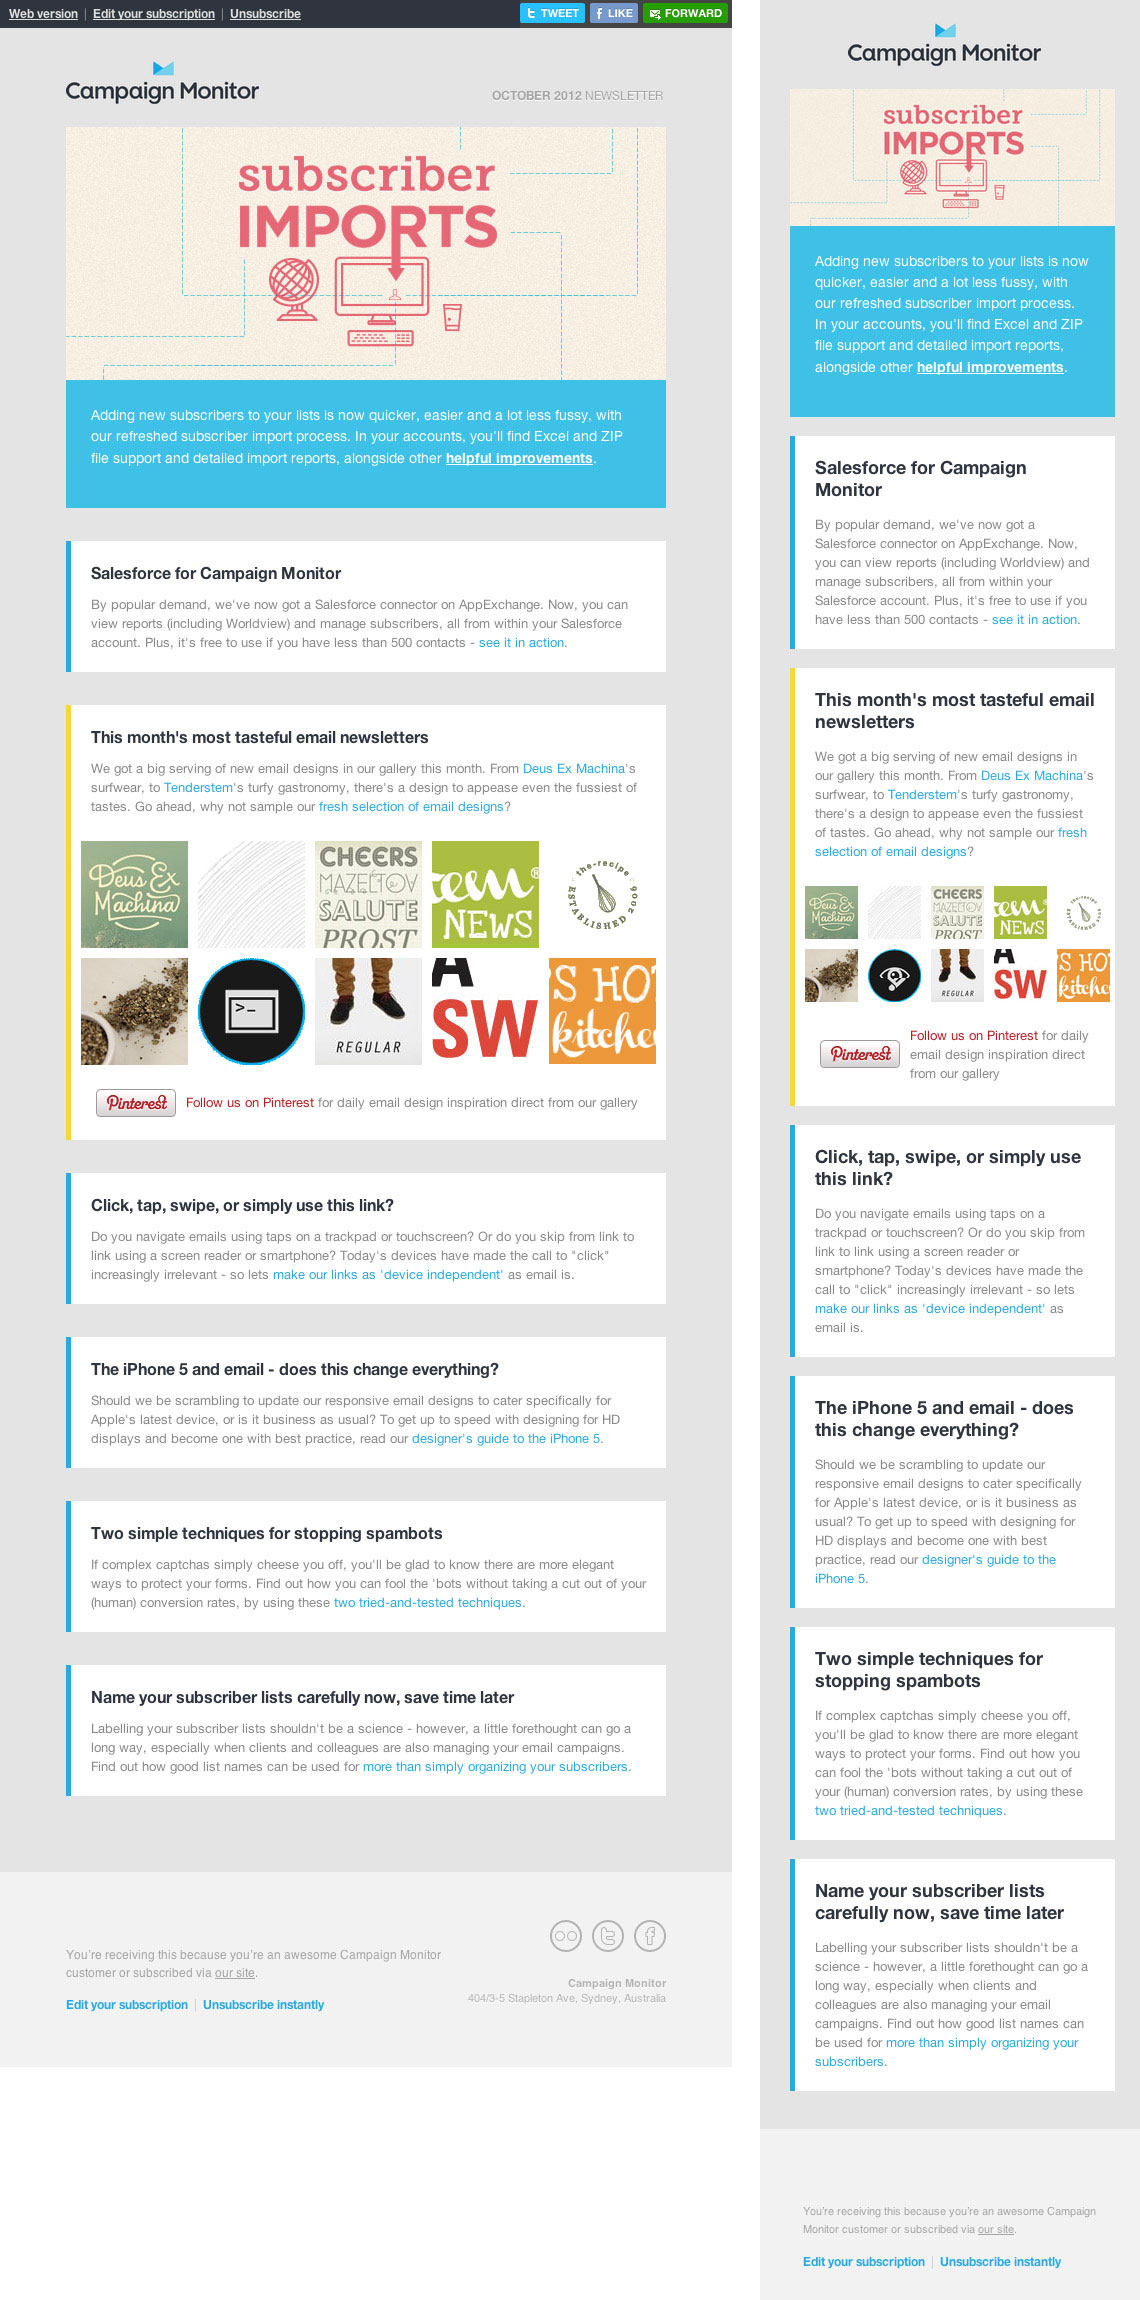 Email Newsletter Design: Guidelines And Examples — Smashing Magazine